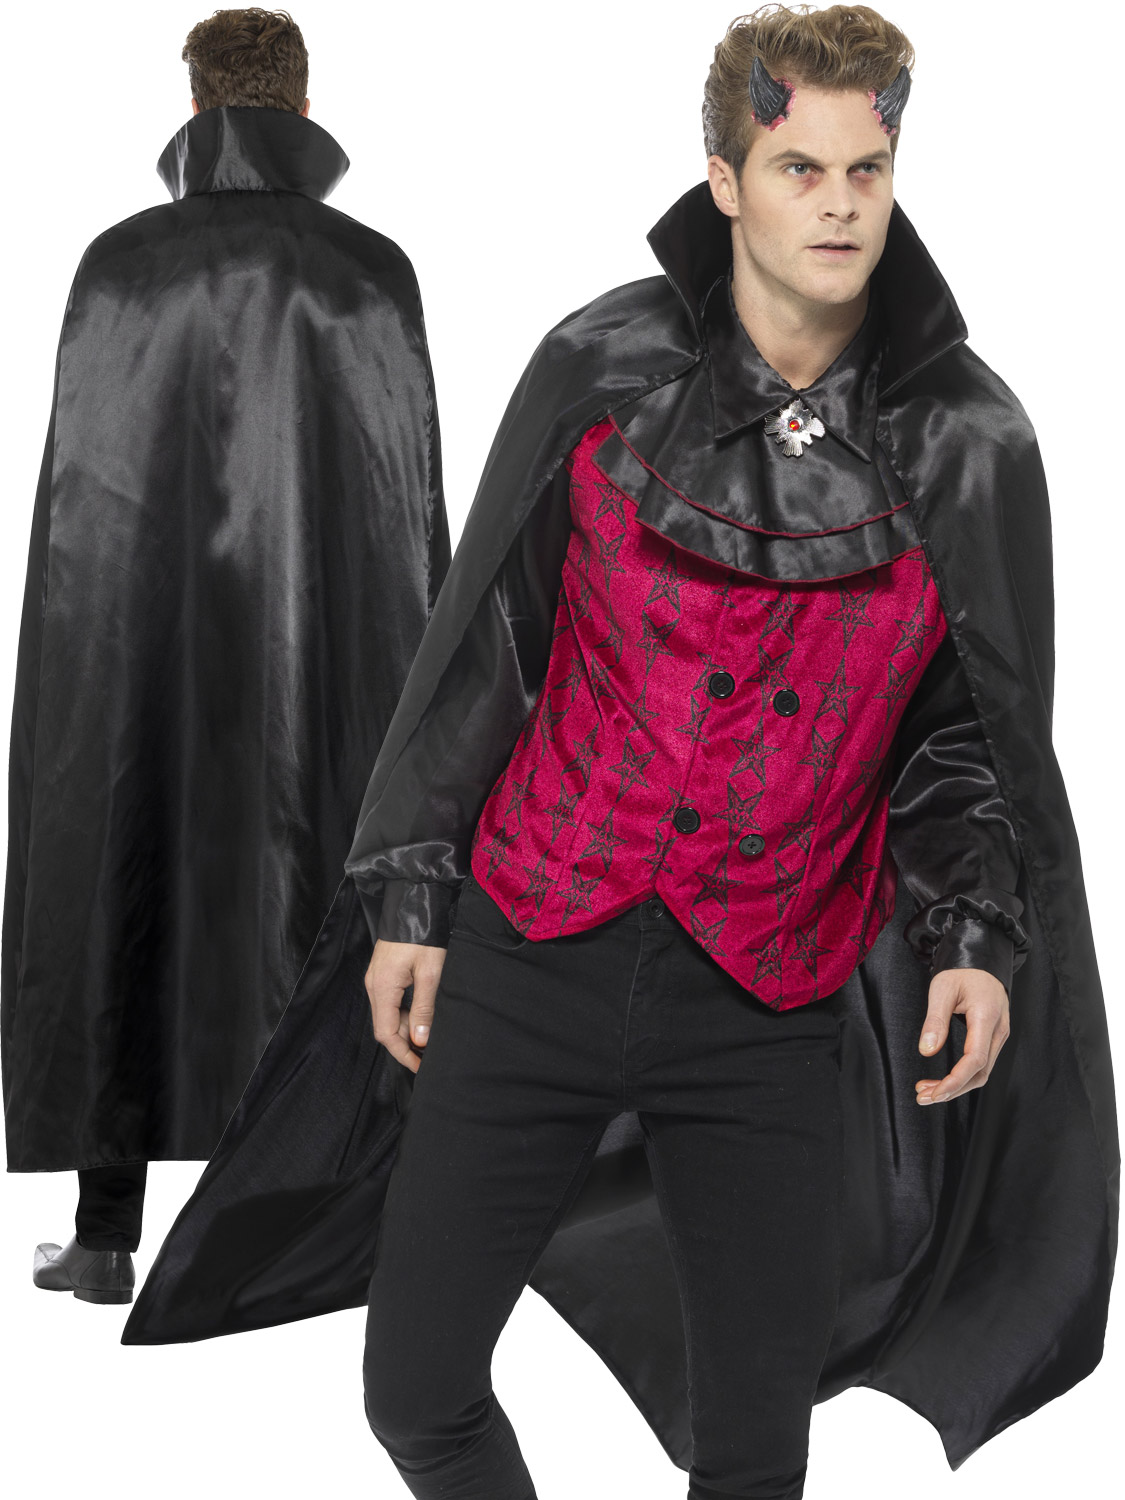 Mens dapper devil costume adults hell vampire halloween fancy dress transform yourself into a handsome devil this halloween in this dapper costume ideal for a party or event solutioingenieria Image collections